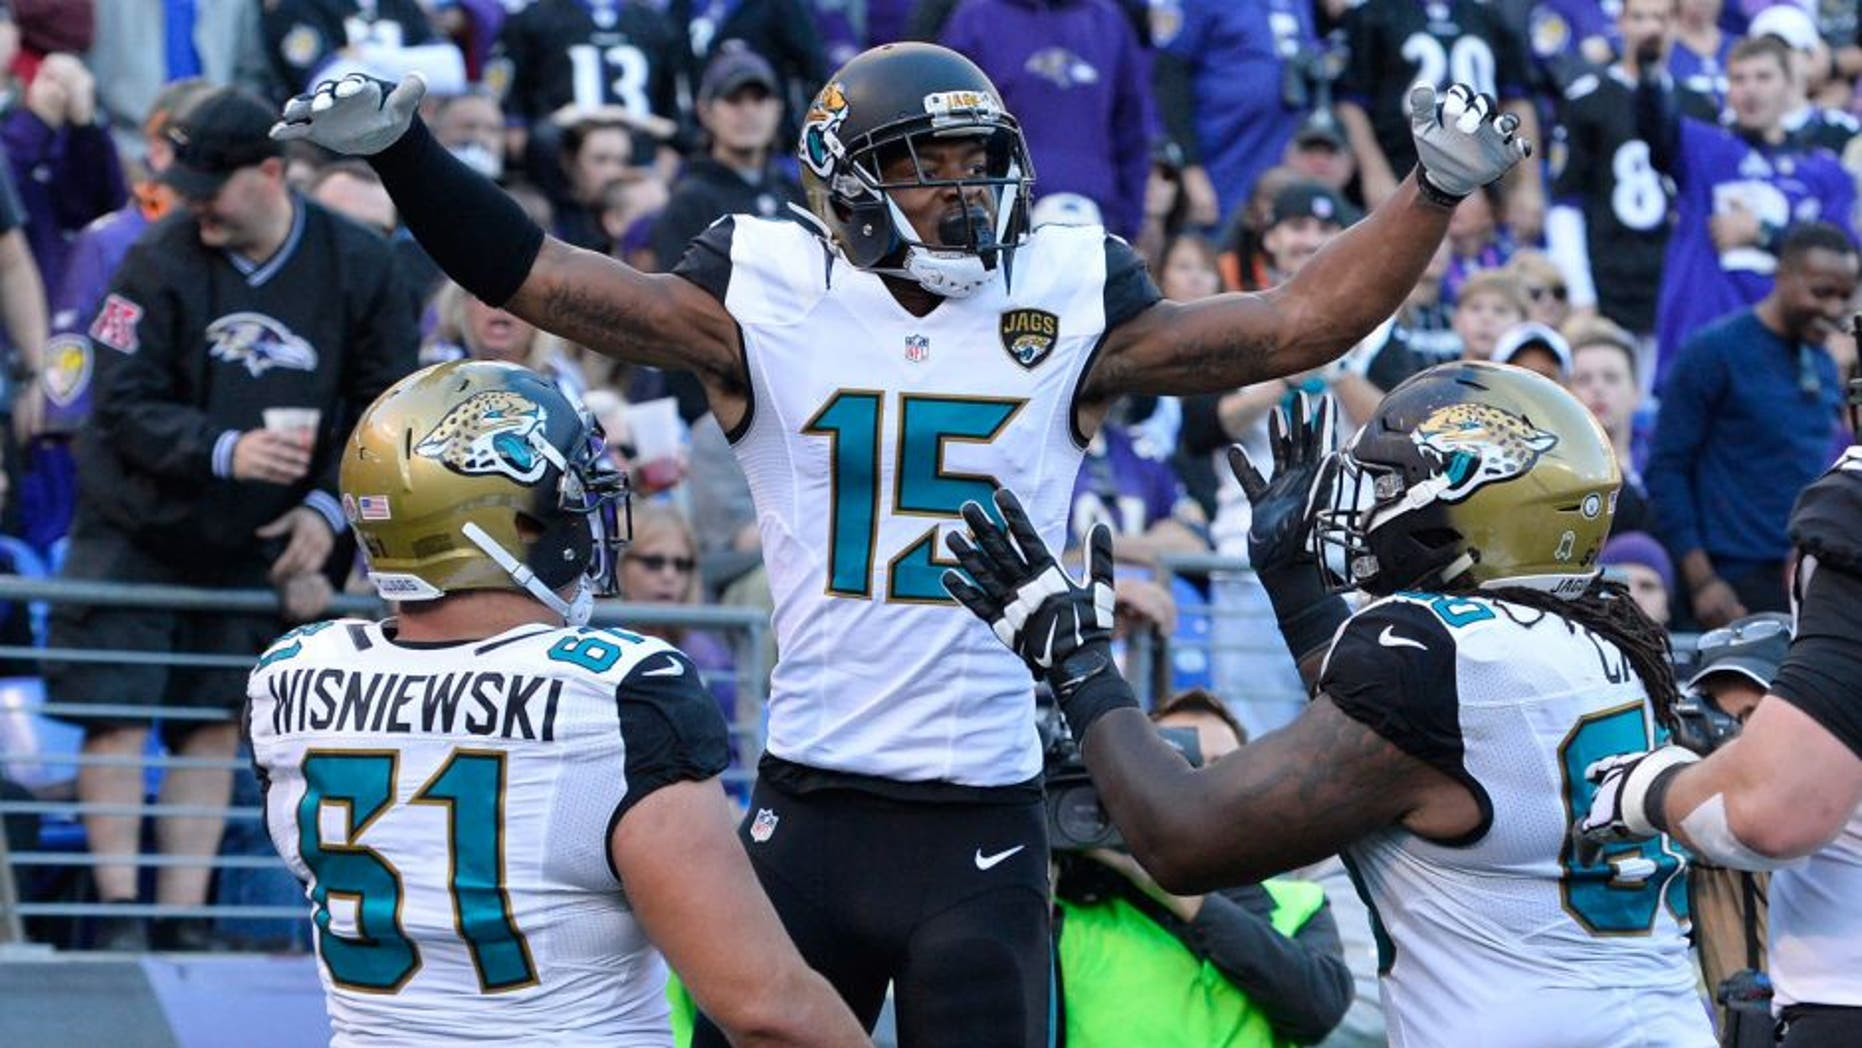 Nov 15, 2015; Baltimore, MD, USA; Jacksonville Jaguars wide receiver Allen Robinson (15) celebrates with teammates after catching a touchdown pass during the fourth quarter against the Baltimore Ravens at M&T Bank Stadium. Mandatory Credit: Tommy Gilligan-USA TODAY Sports